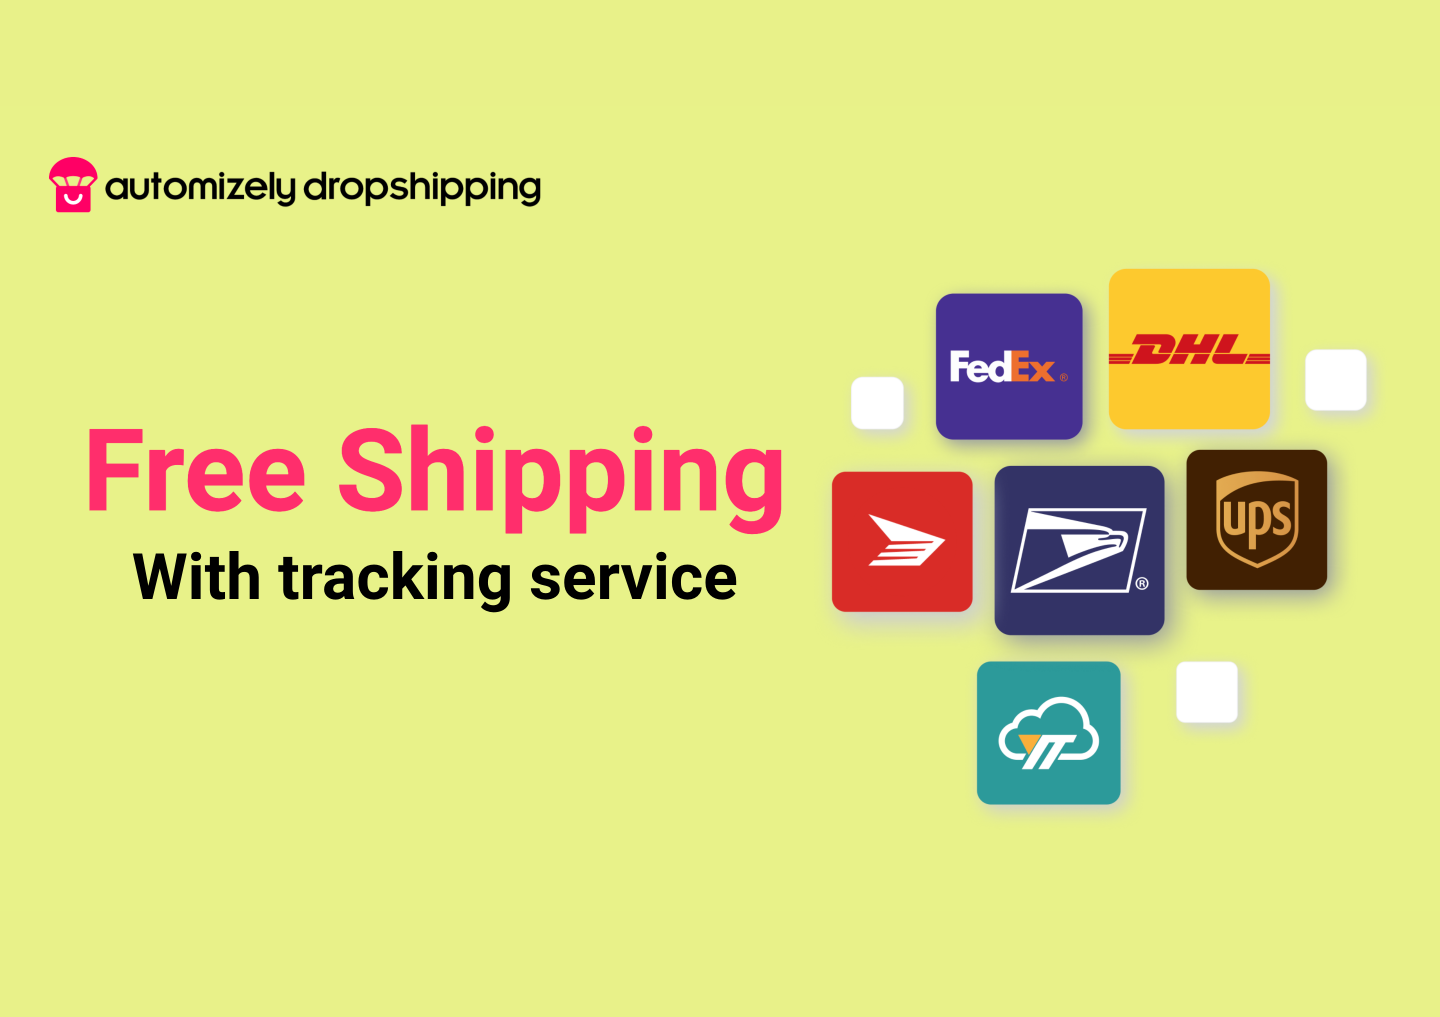 Build trust with customers with good shipping time and trackable delivery.